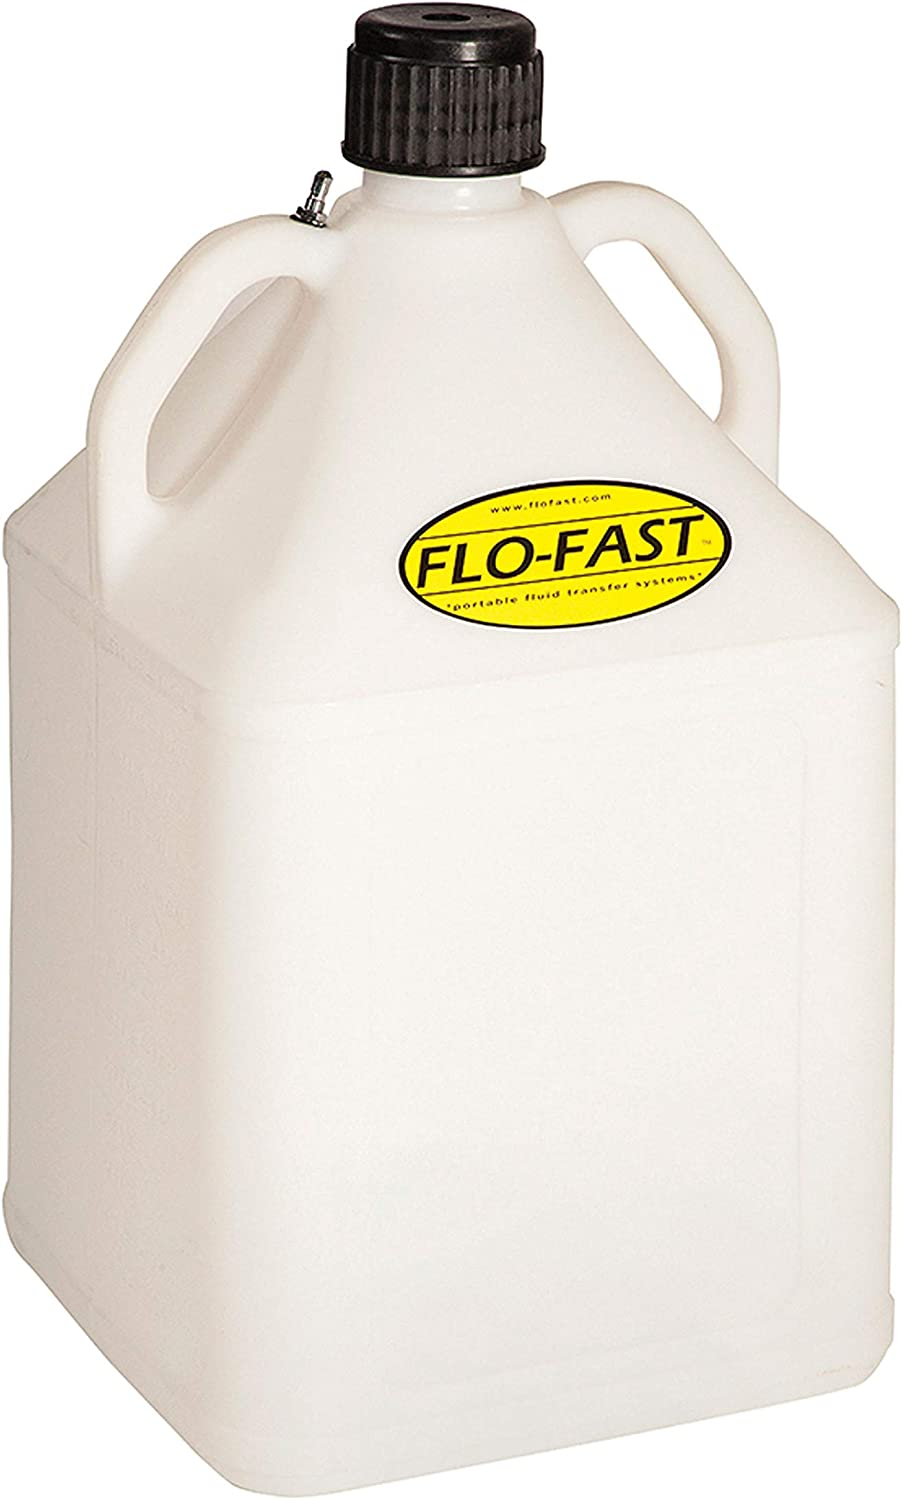 Flo-Fast 15503 15 Gallon Container